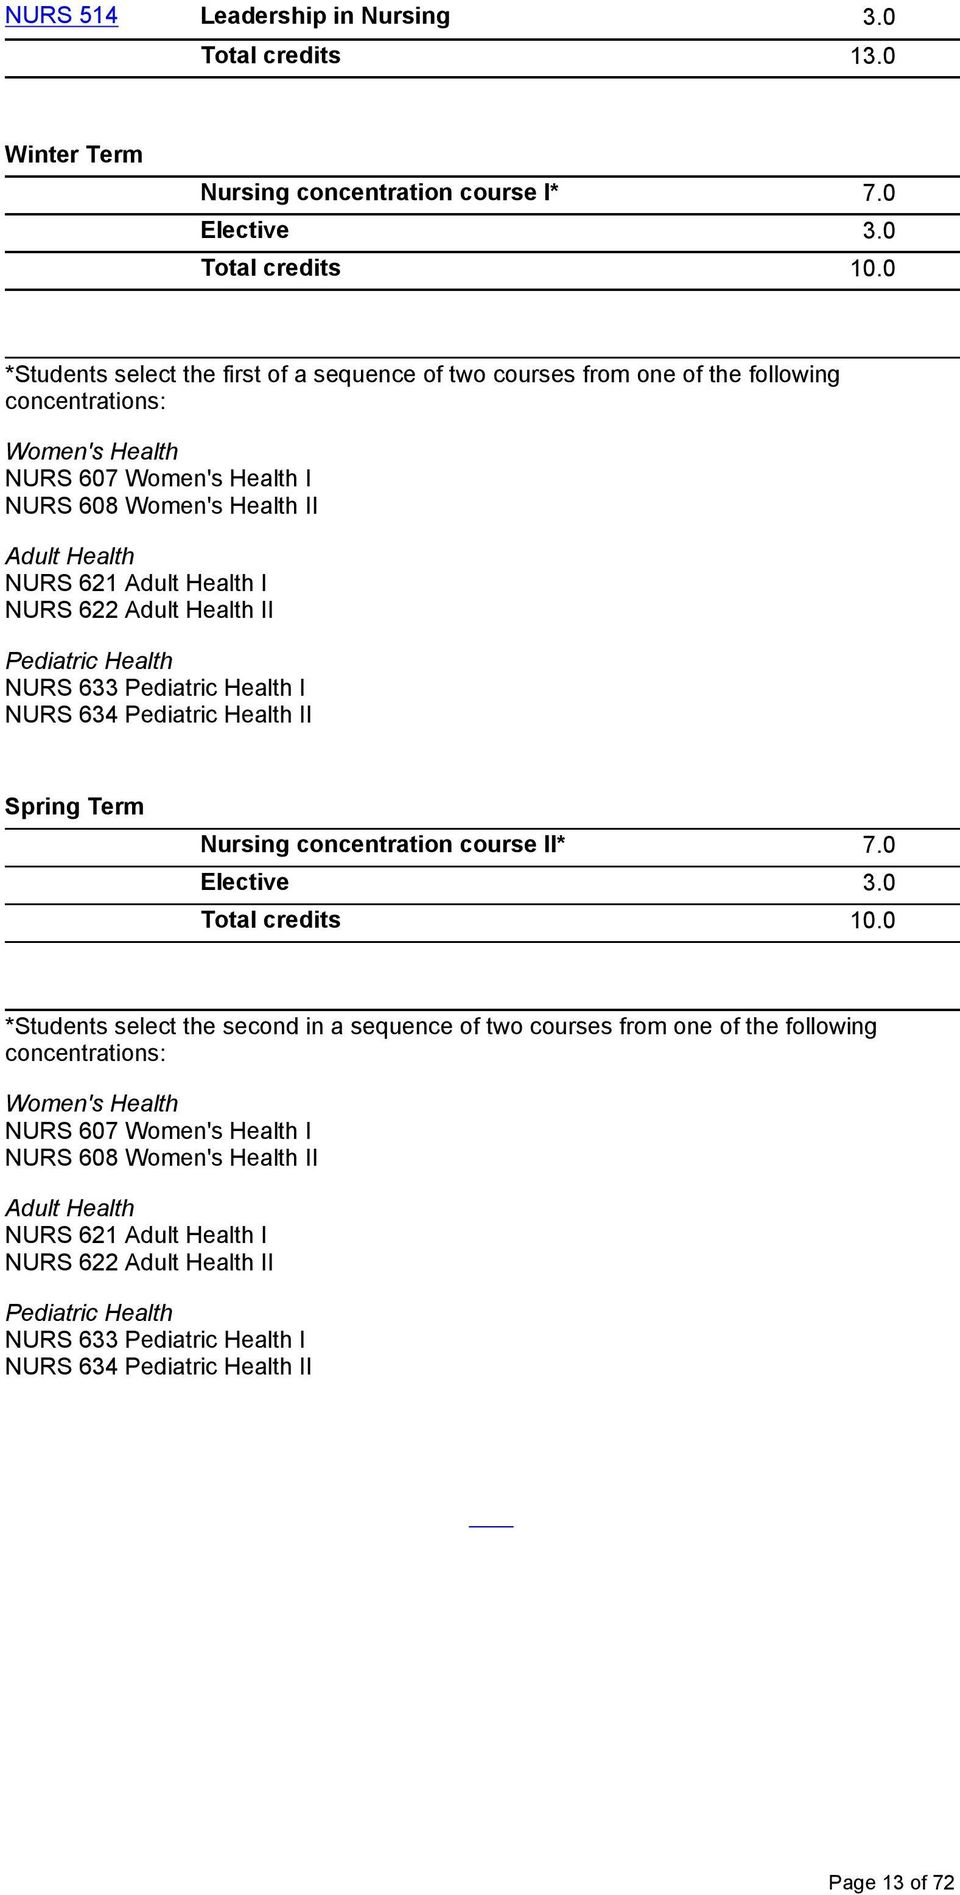 Health I NURS 622 Adult Health II Pediatric Health NURS 633 Pediatric Health I NURS 634 Pediatric Health II Spring Term Nursing concentration course II* 7.0 Elective 3.0 Total credits 10.